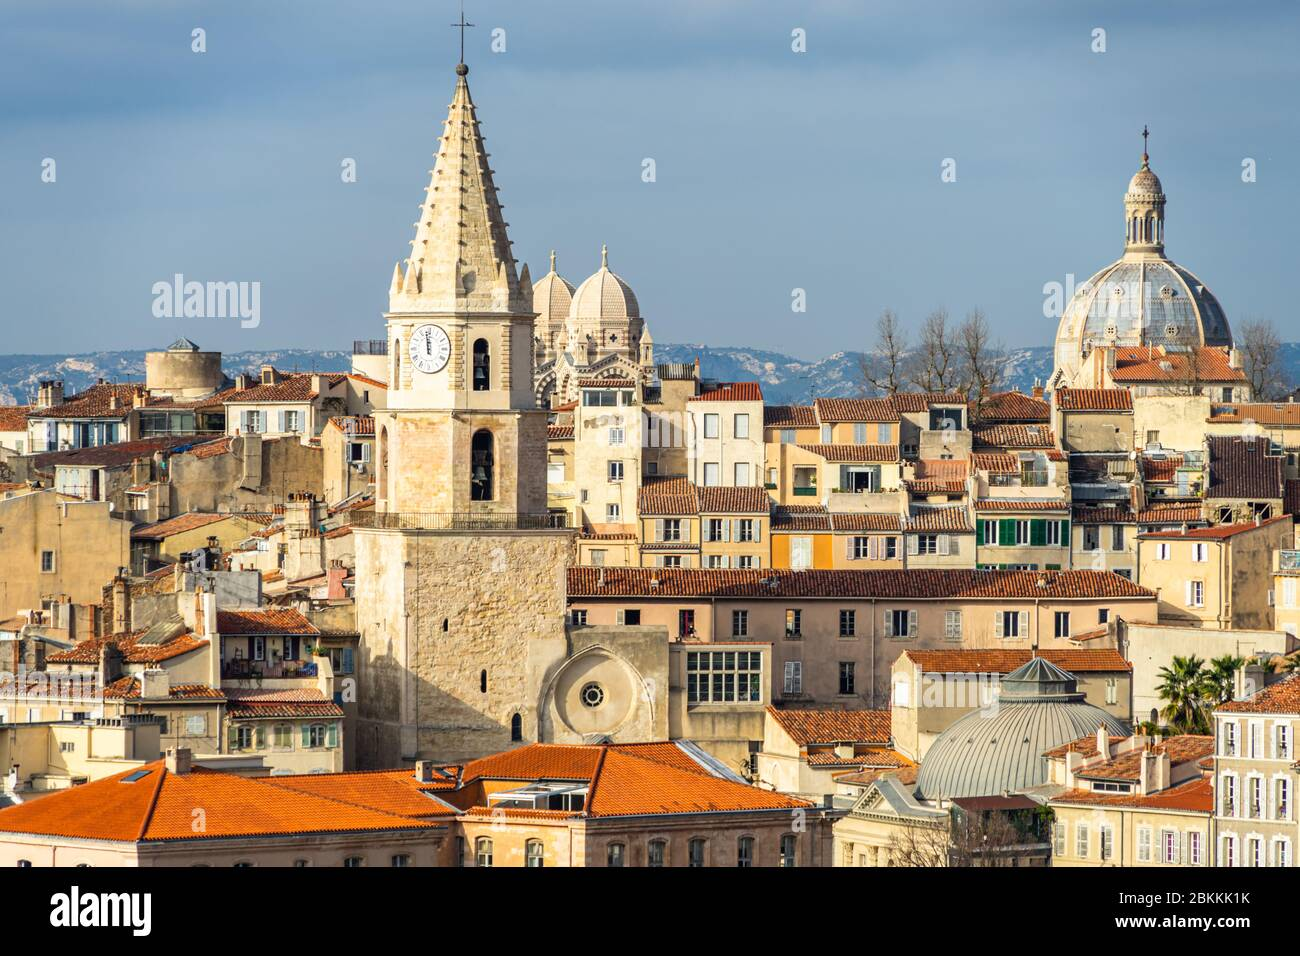 Skyline of Le Panier quarter, the famous old town of Marseille and one of the most visited tourist attraction of the city, France Stock Photo